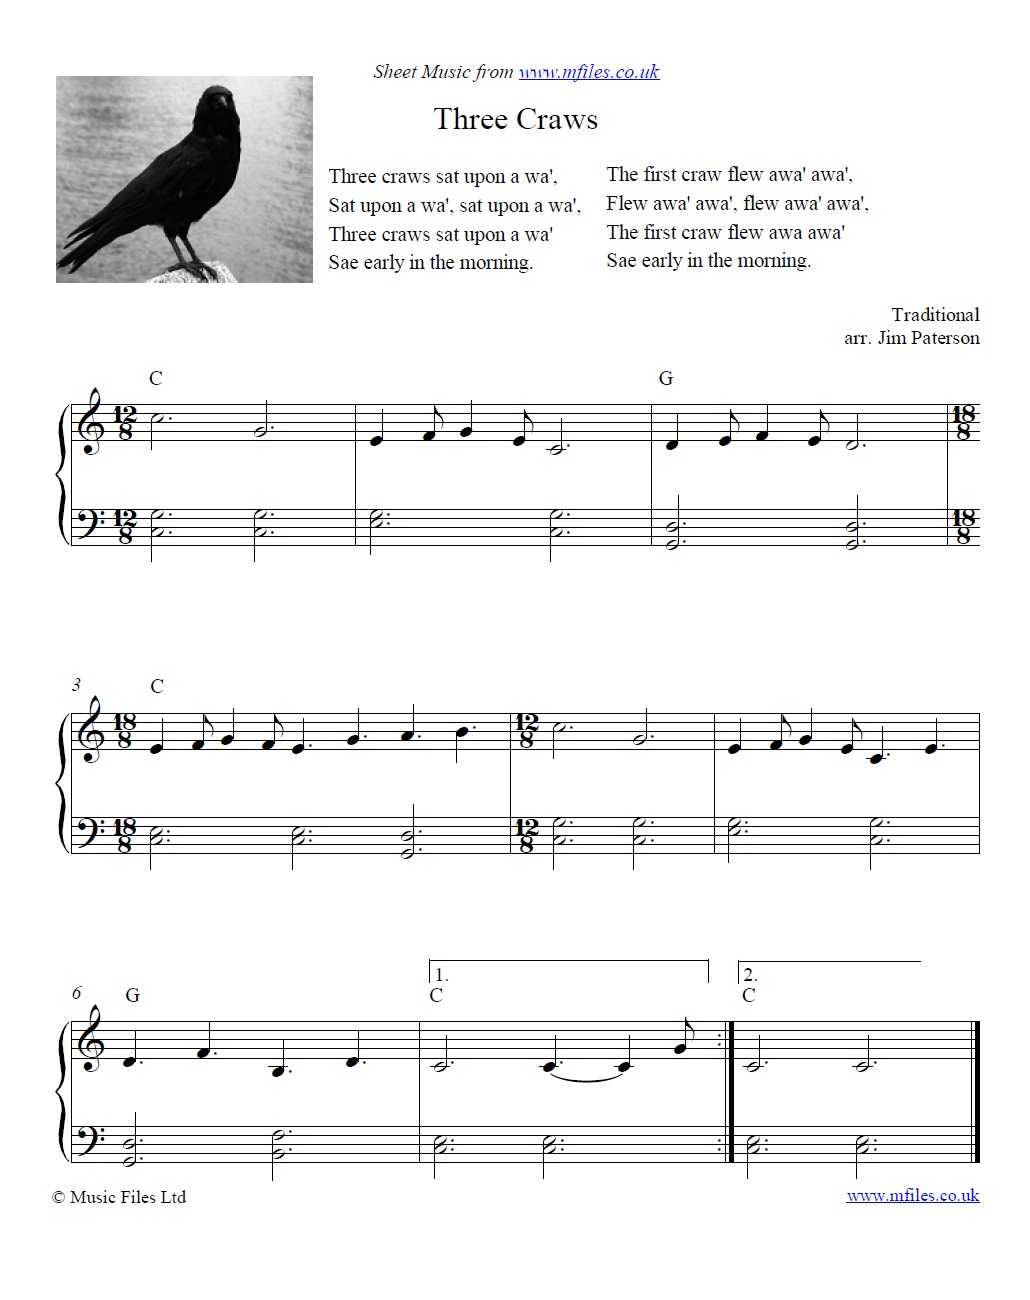 Three Craws for piano - sheet music 1st page